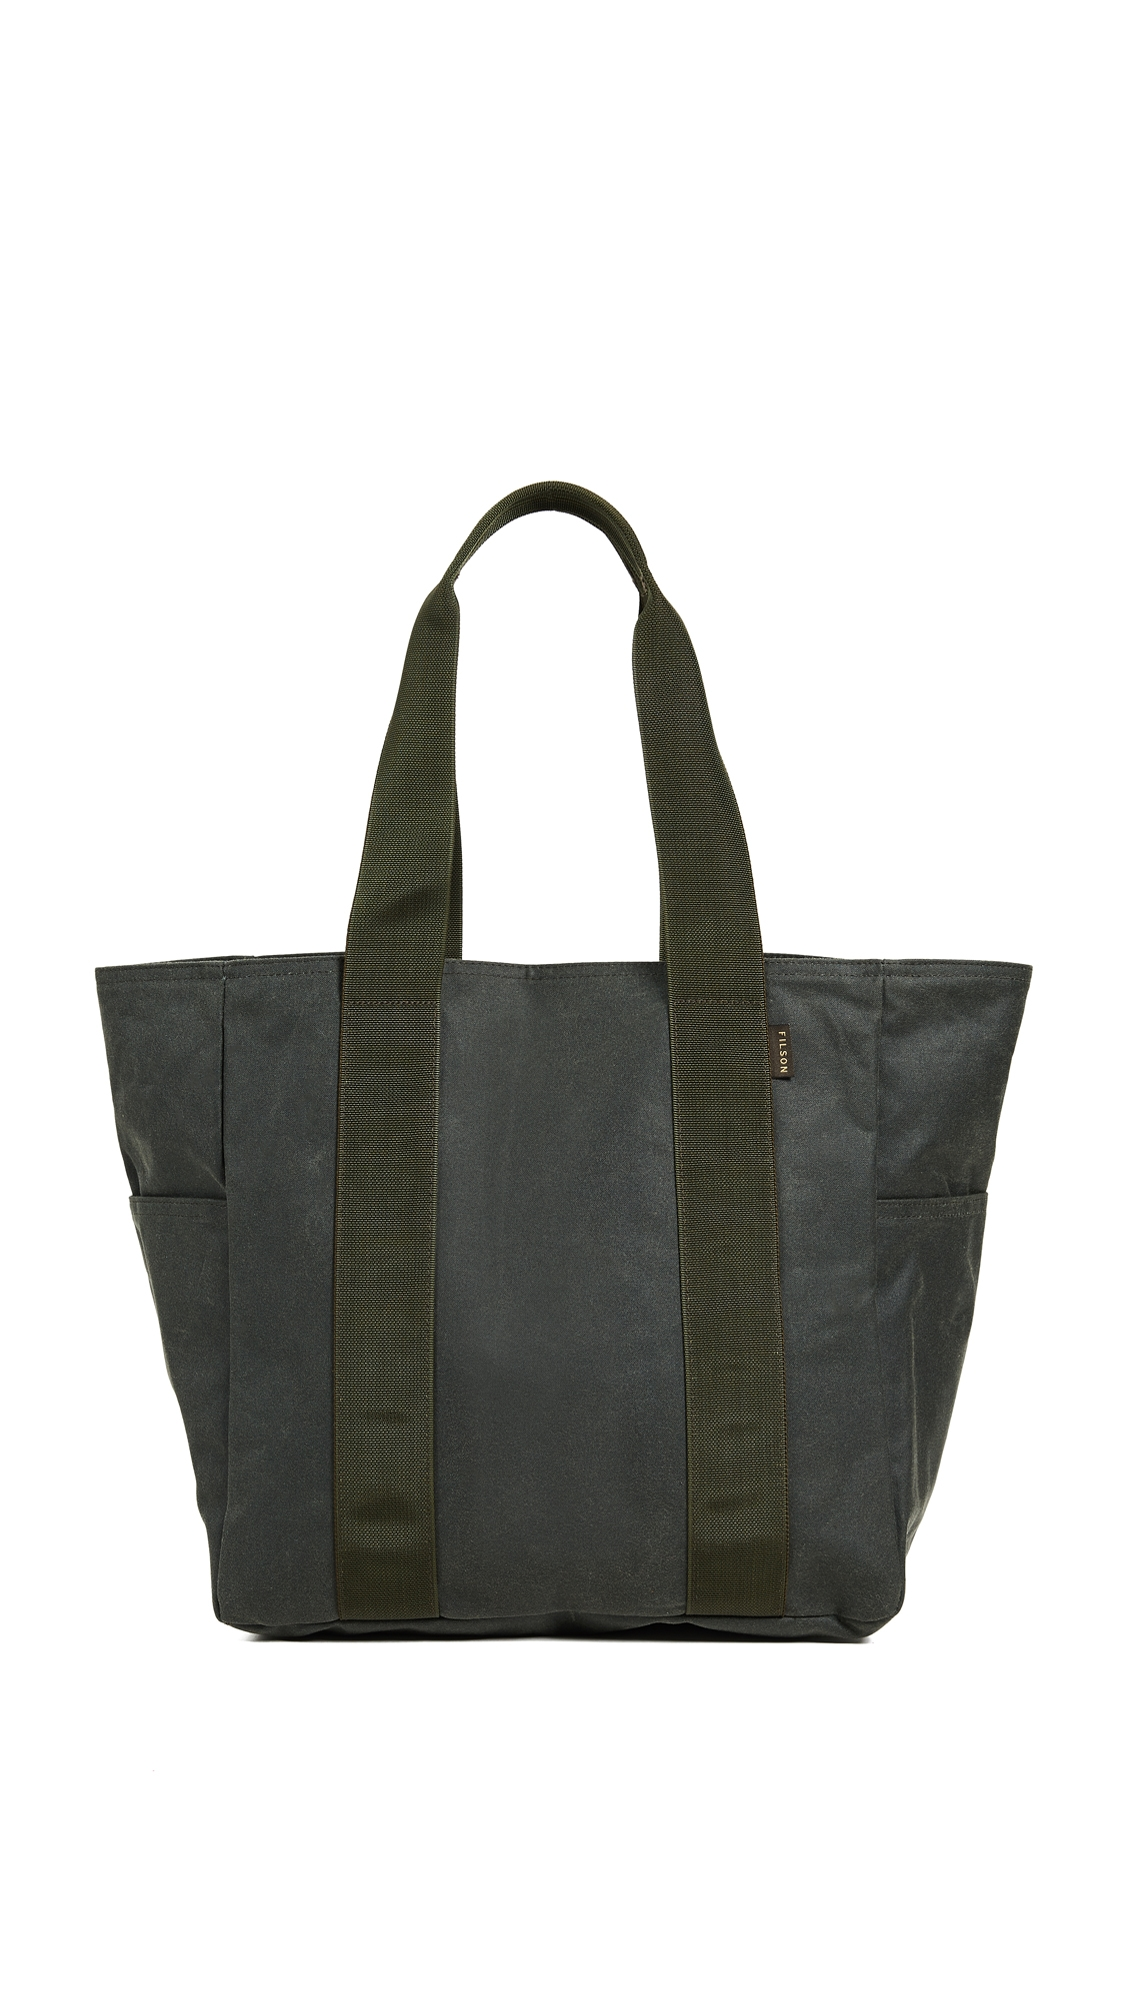 GRAB N GO MEDIUM TOTE